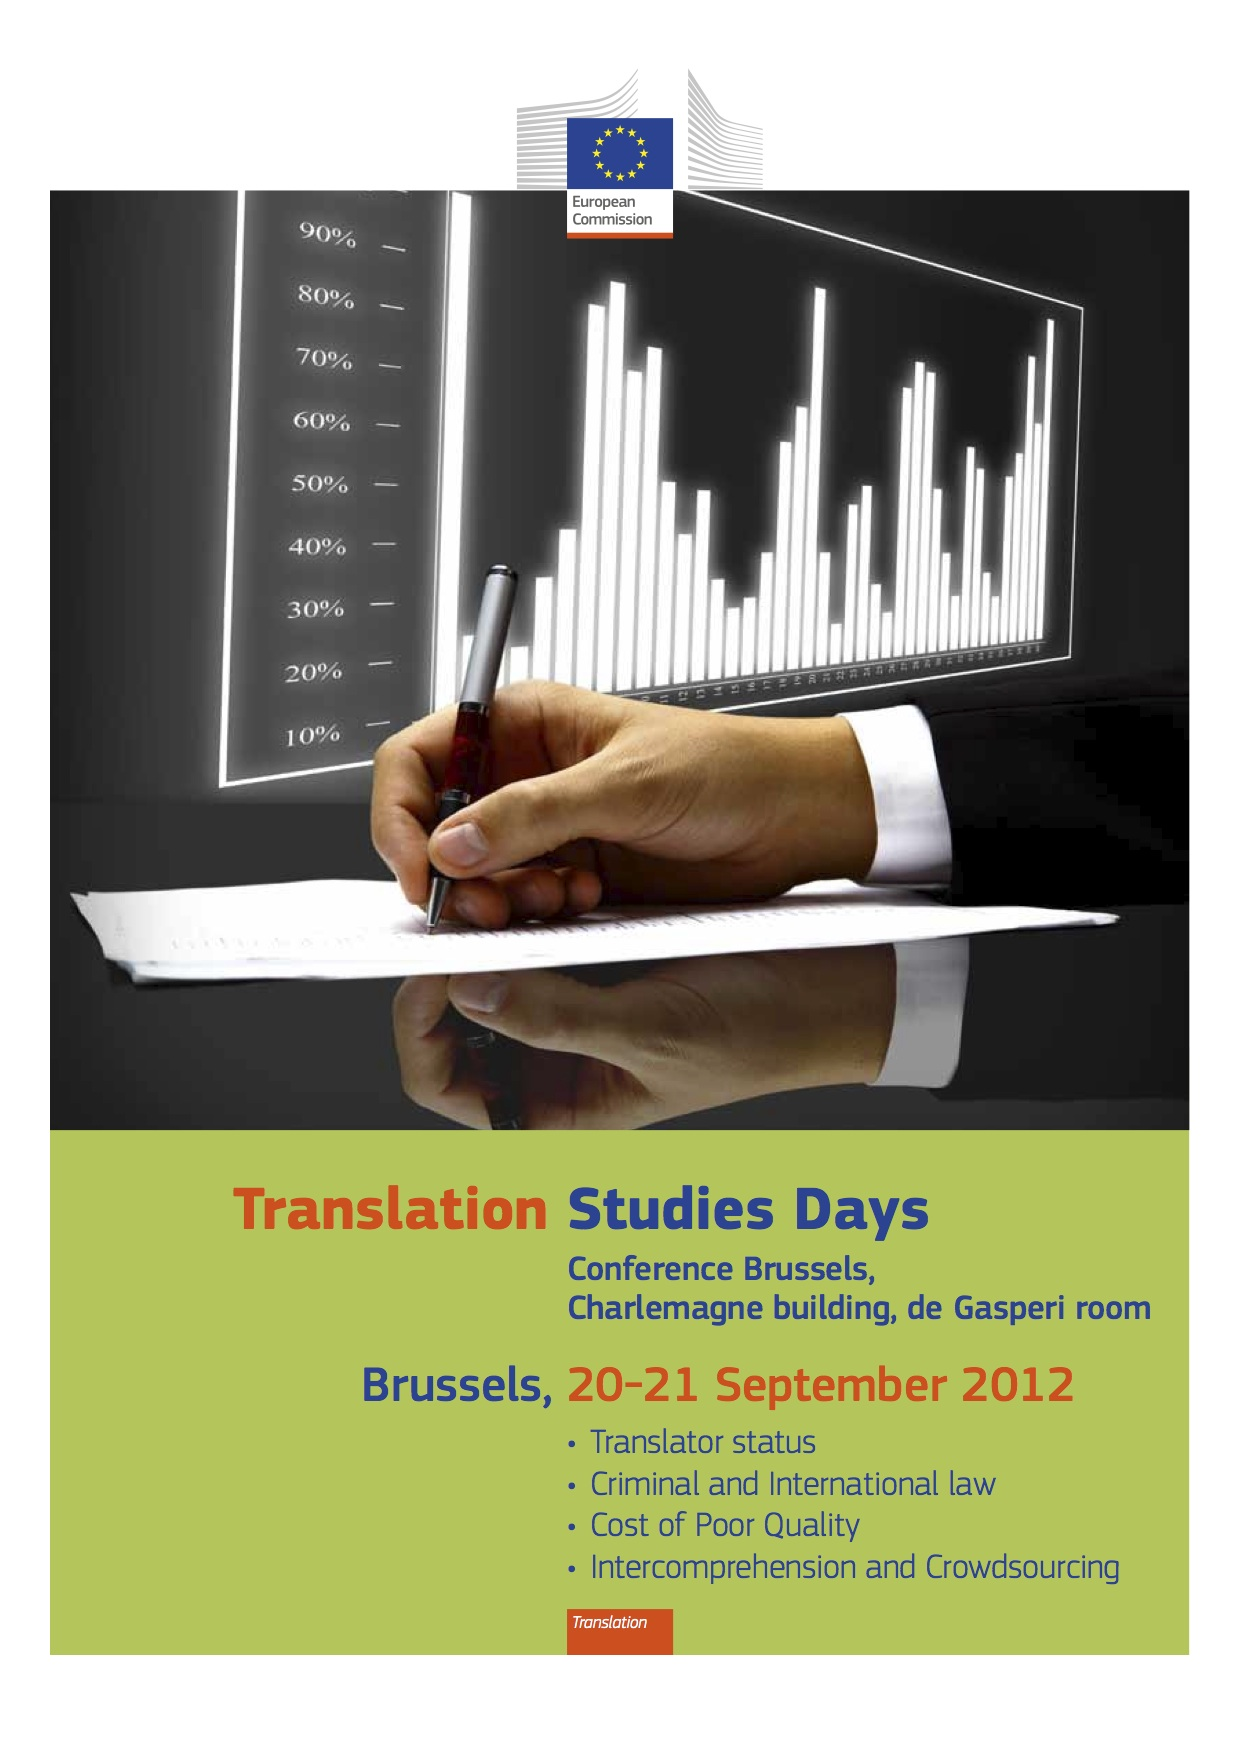 thesis translation russian Certified thesis translation services in pakistan at discounted rates in any language get your thesis translation done from professional qualified translator for applying in embassy visa purposes.